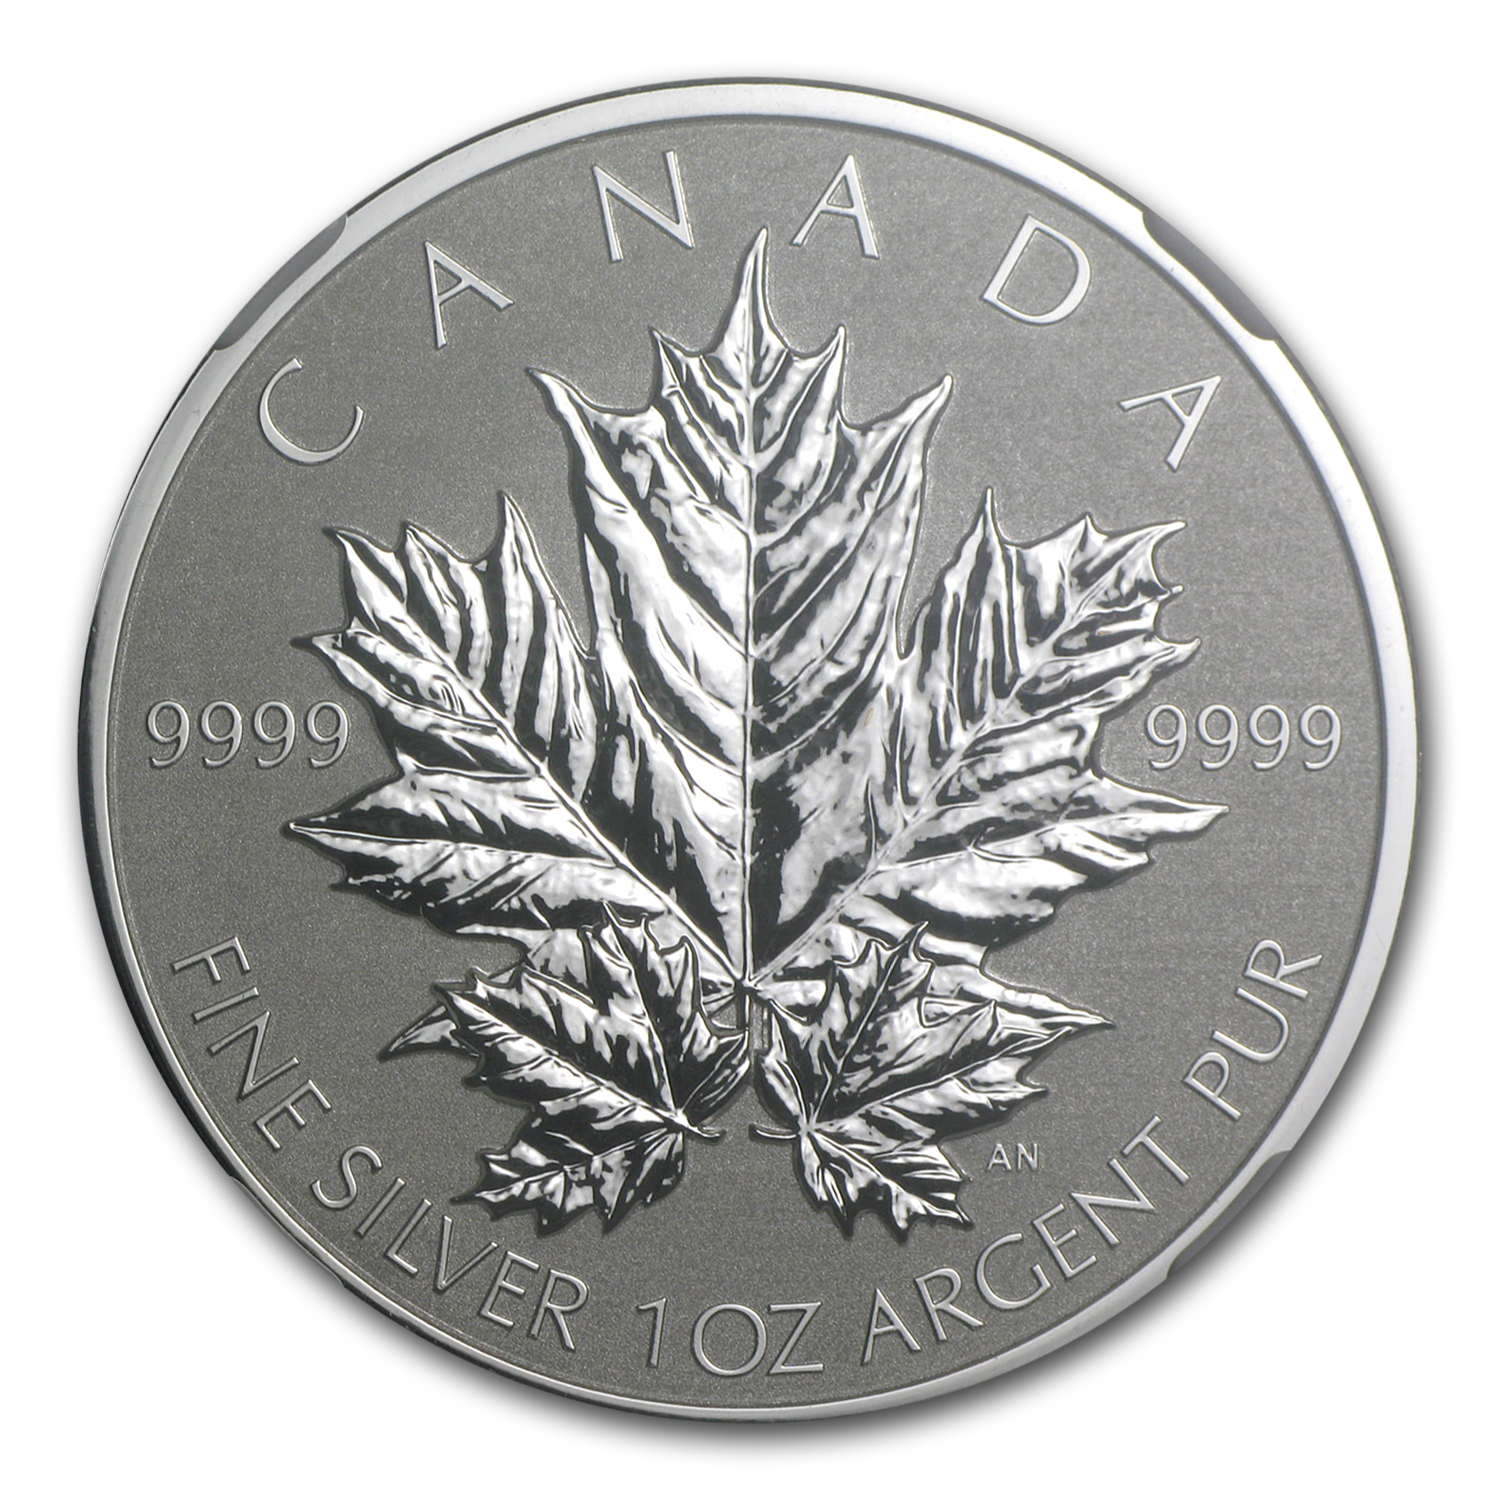 2013 1 oz Silver Canadian Maple Leaf PF-70 NGC (25th Anniv.)